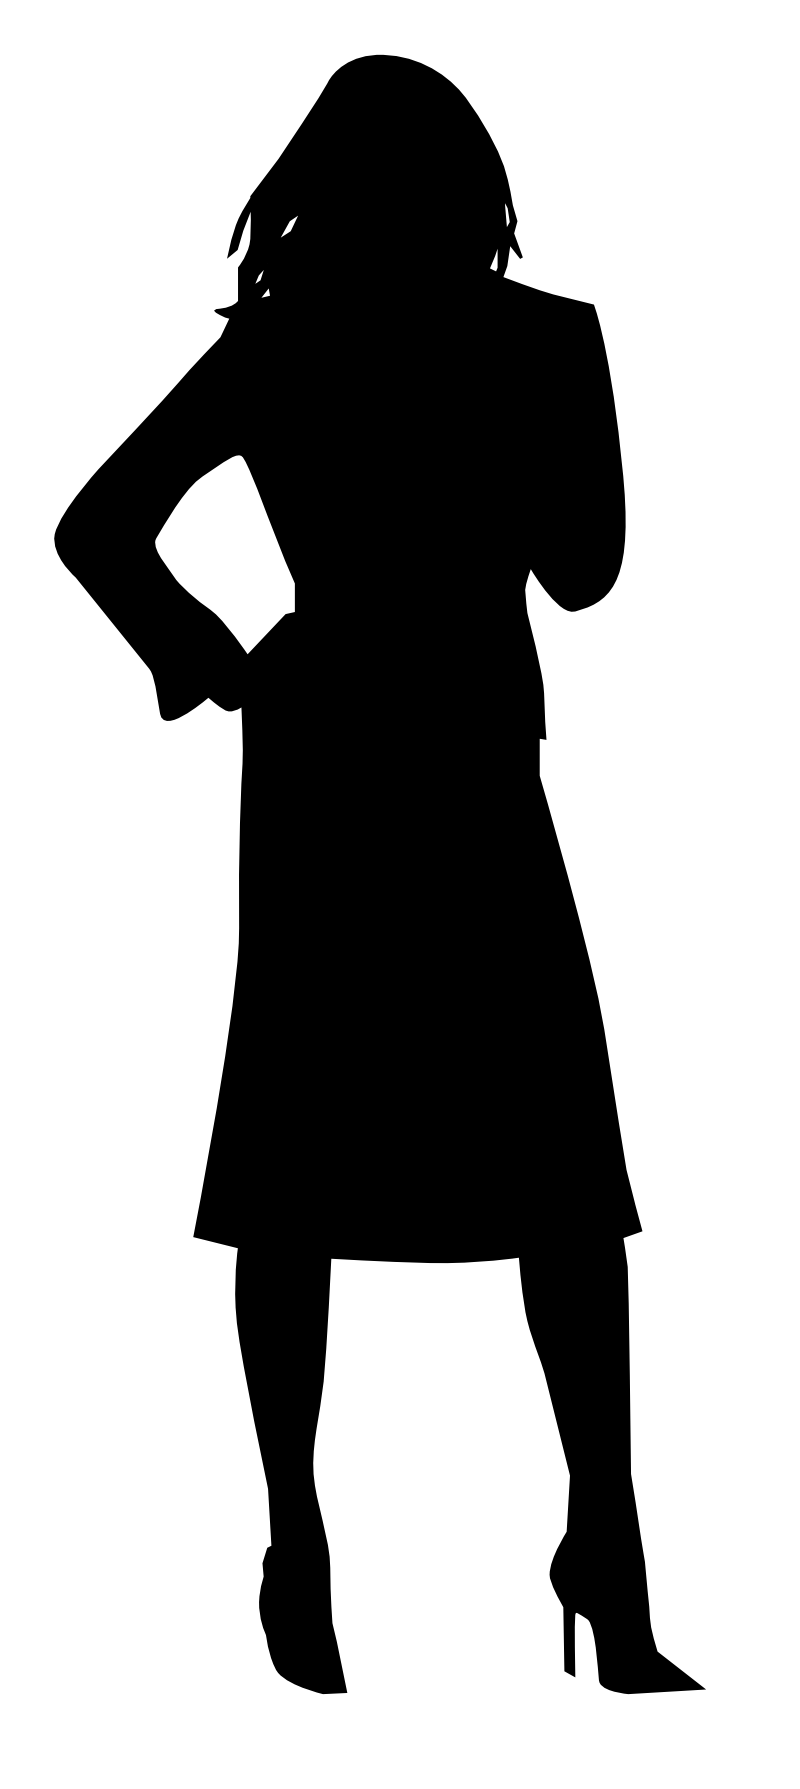 Woman svg #12, Download drawings